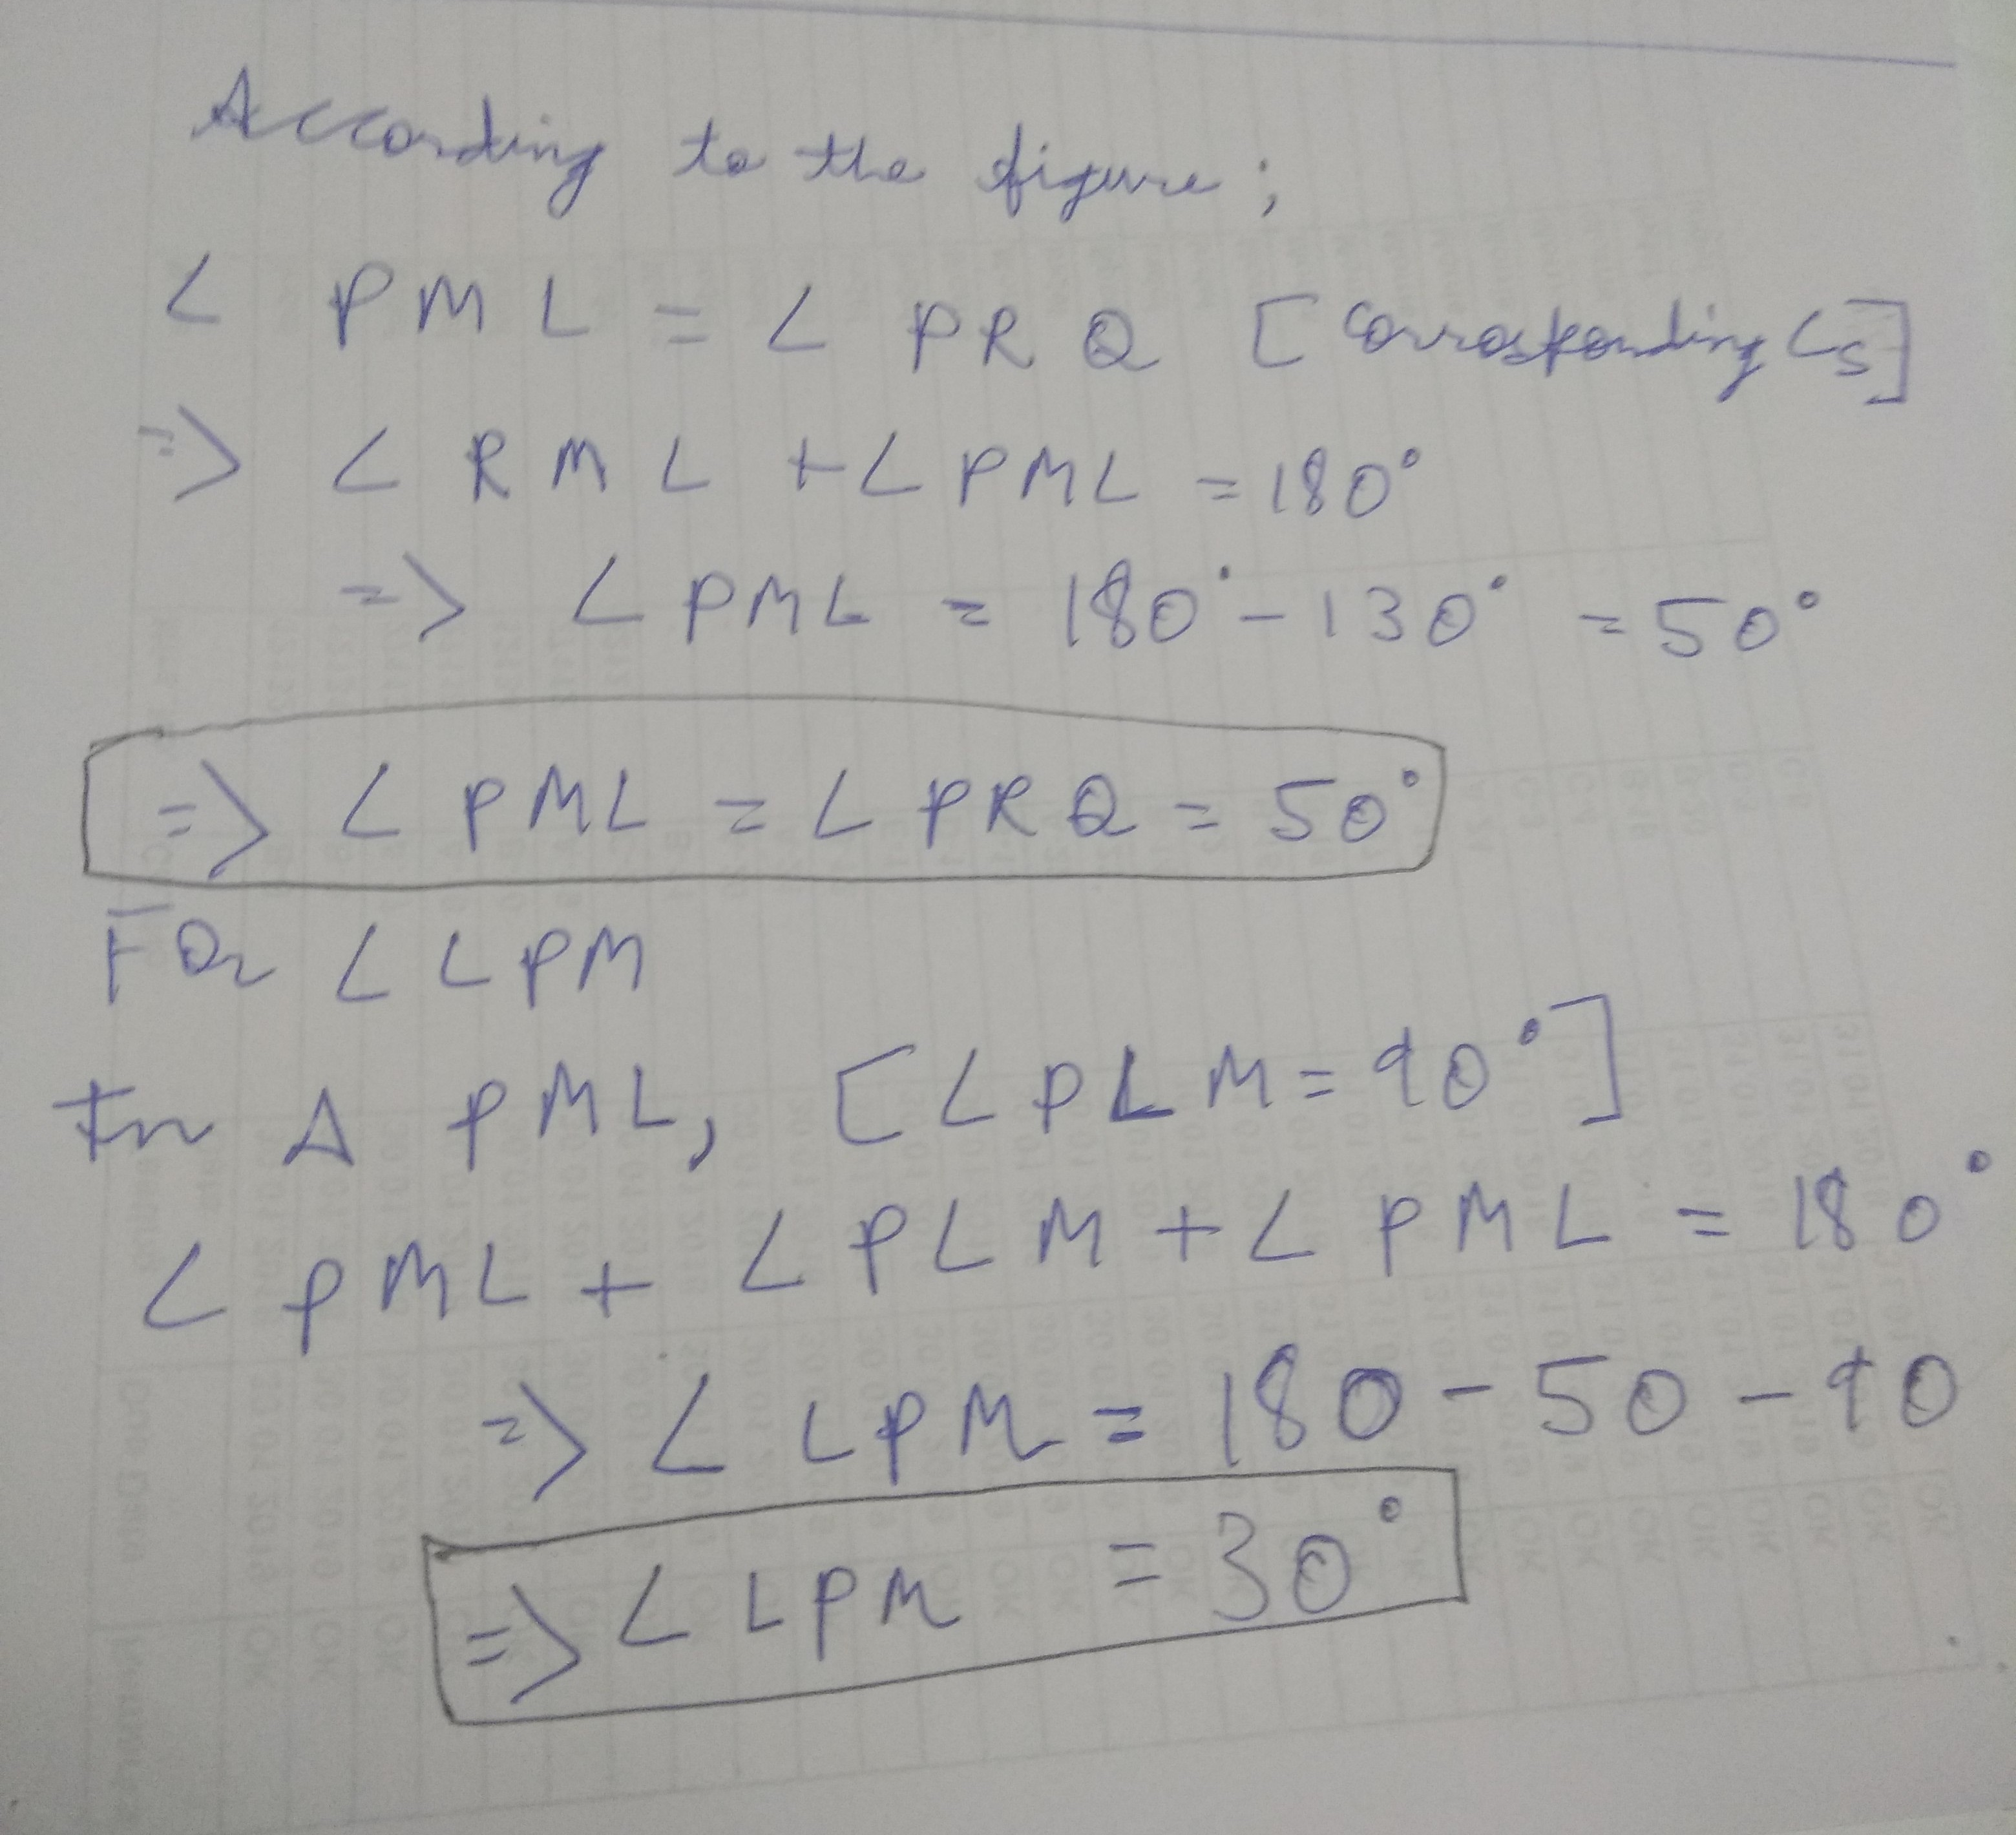 in the figure triangle PQR is a right angled at Q, ML is